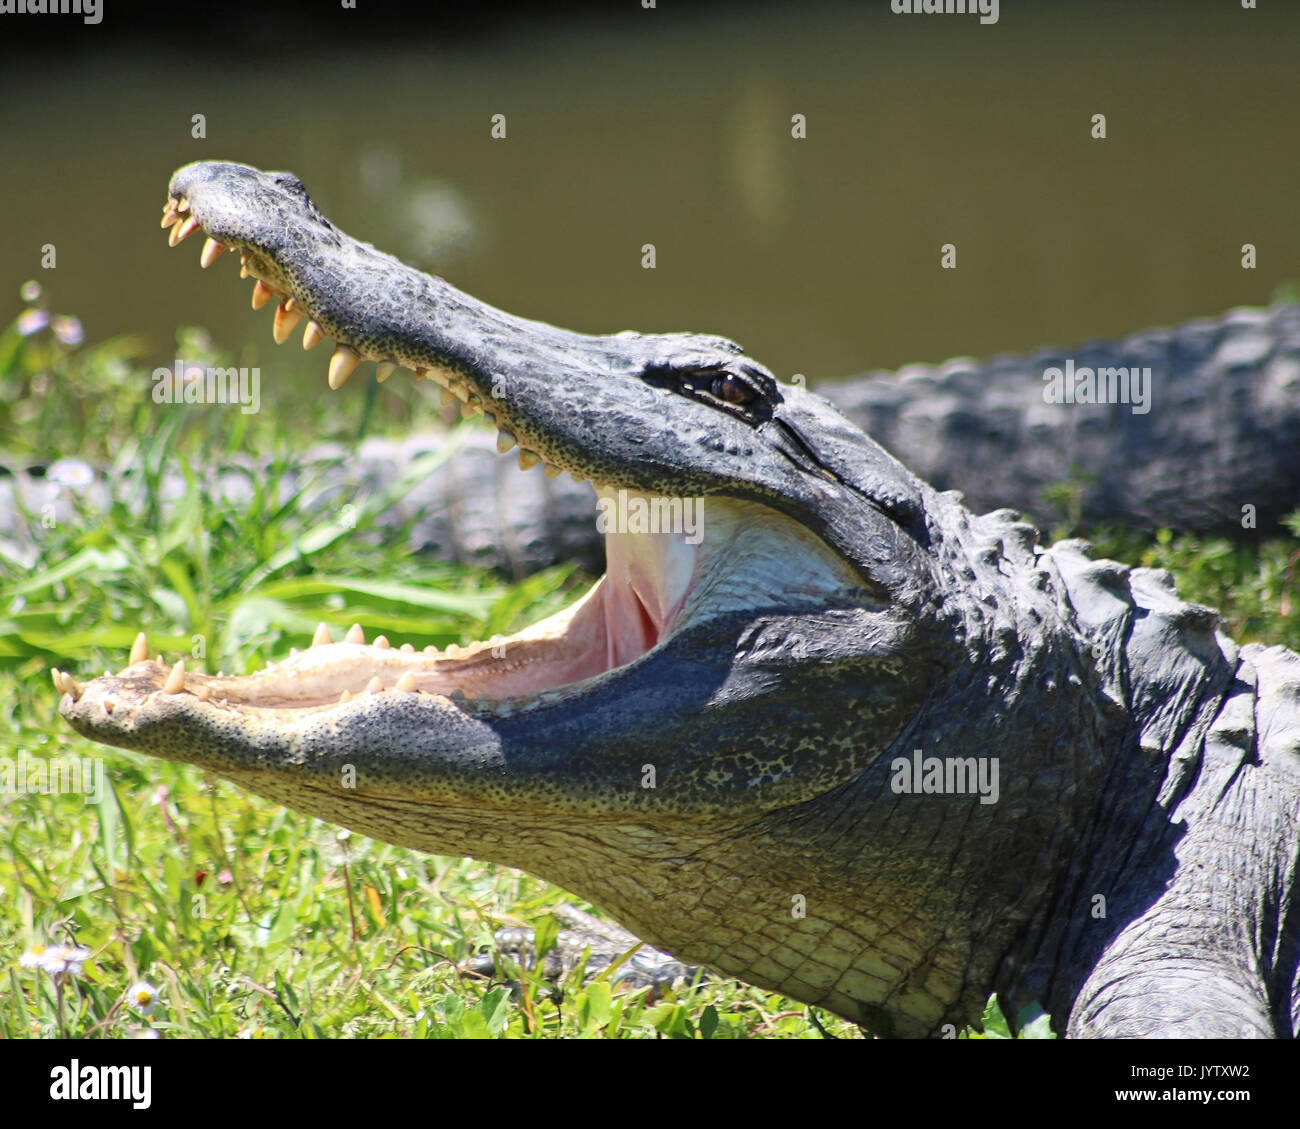 Alligator in profile open mouth - Stock Image